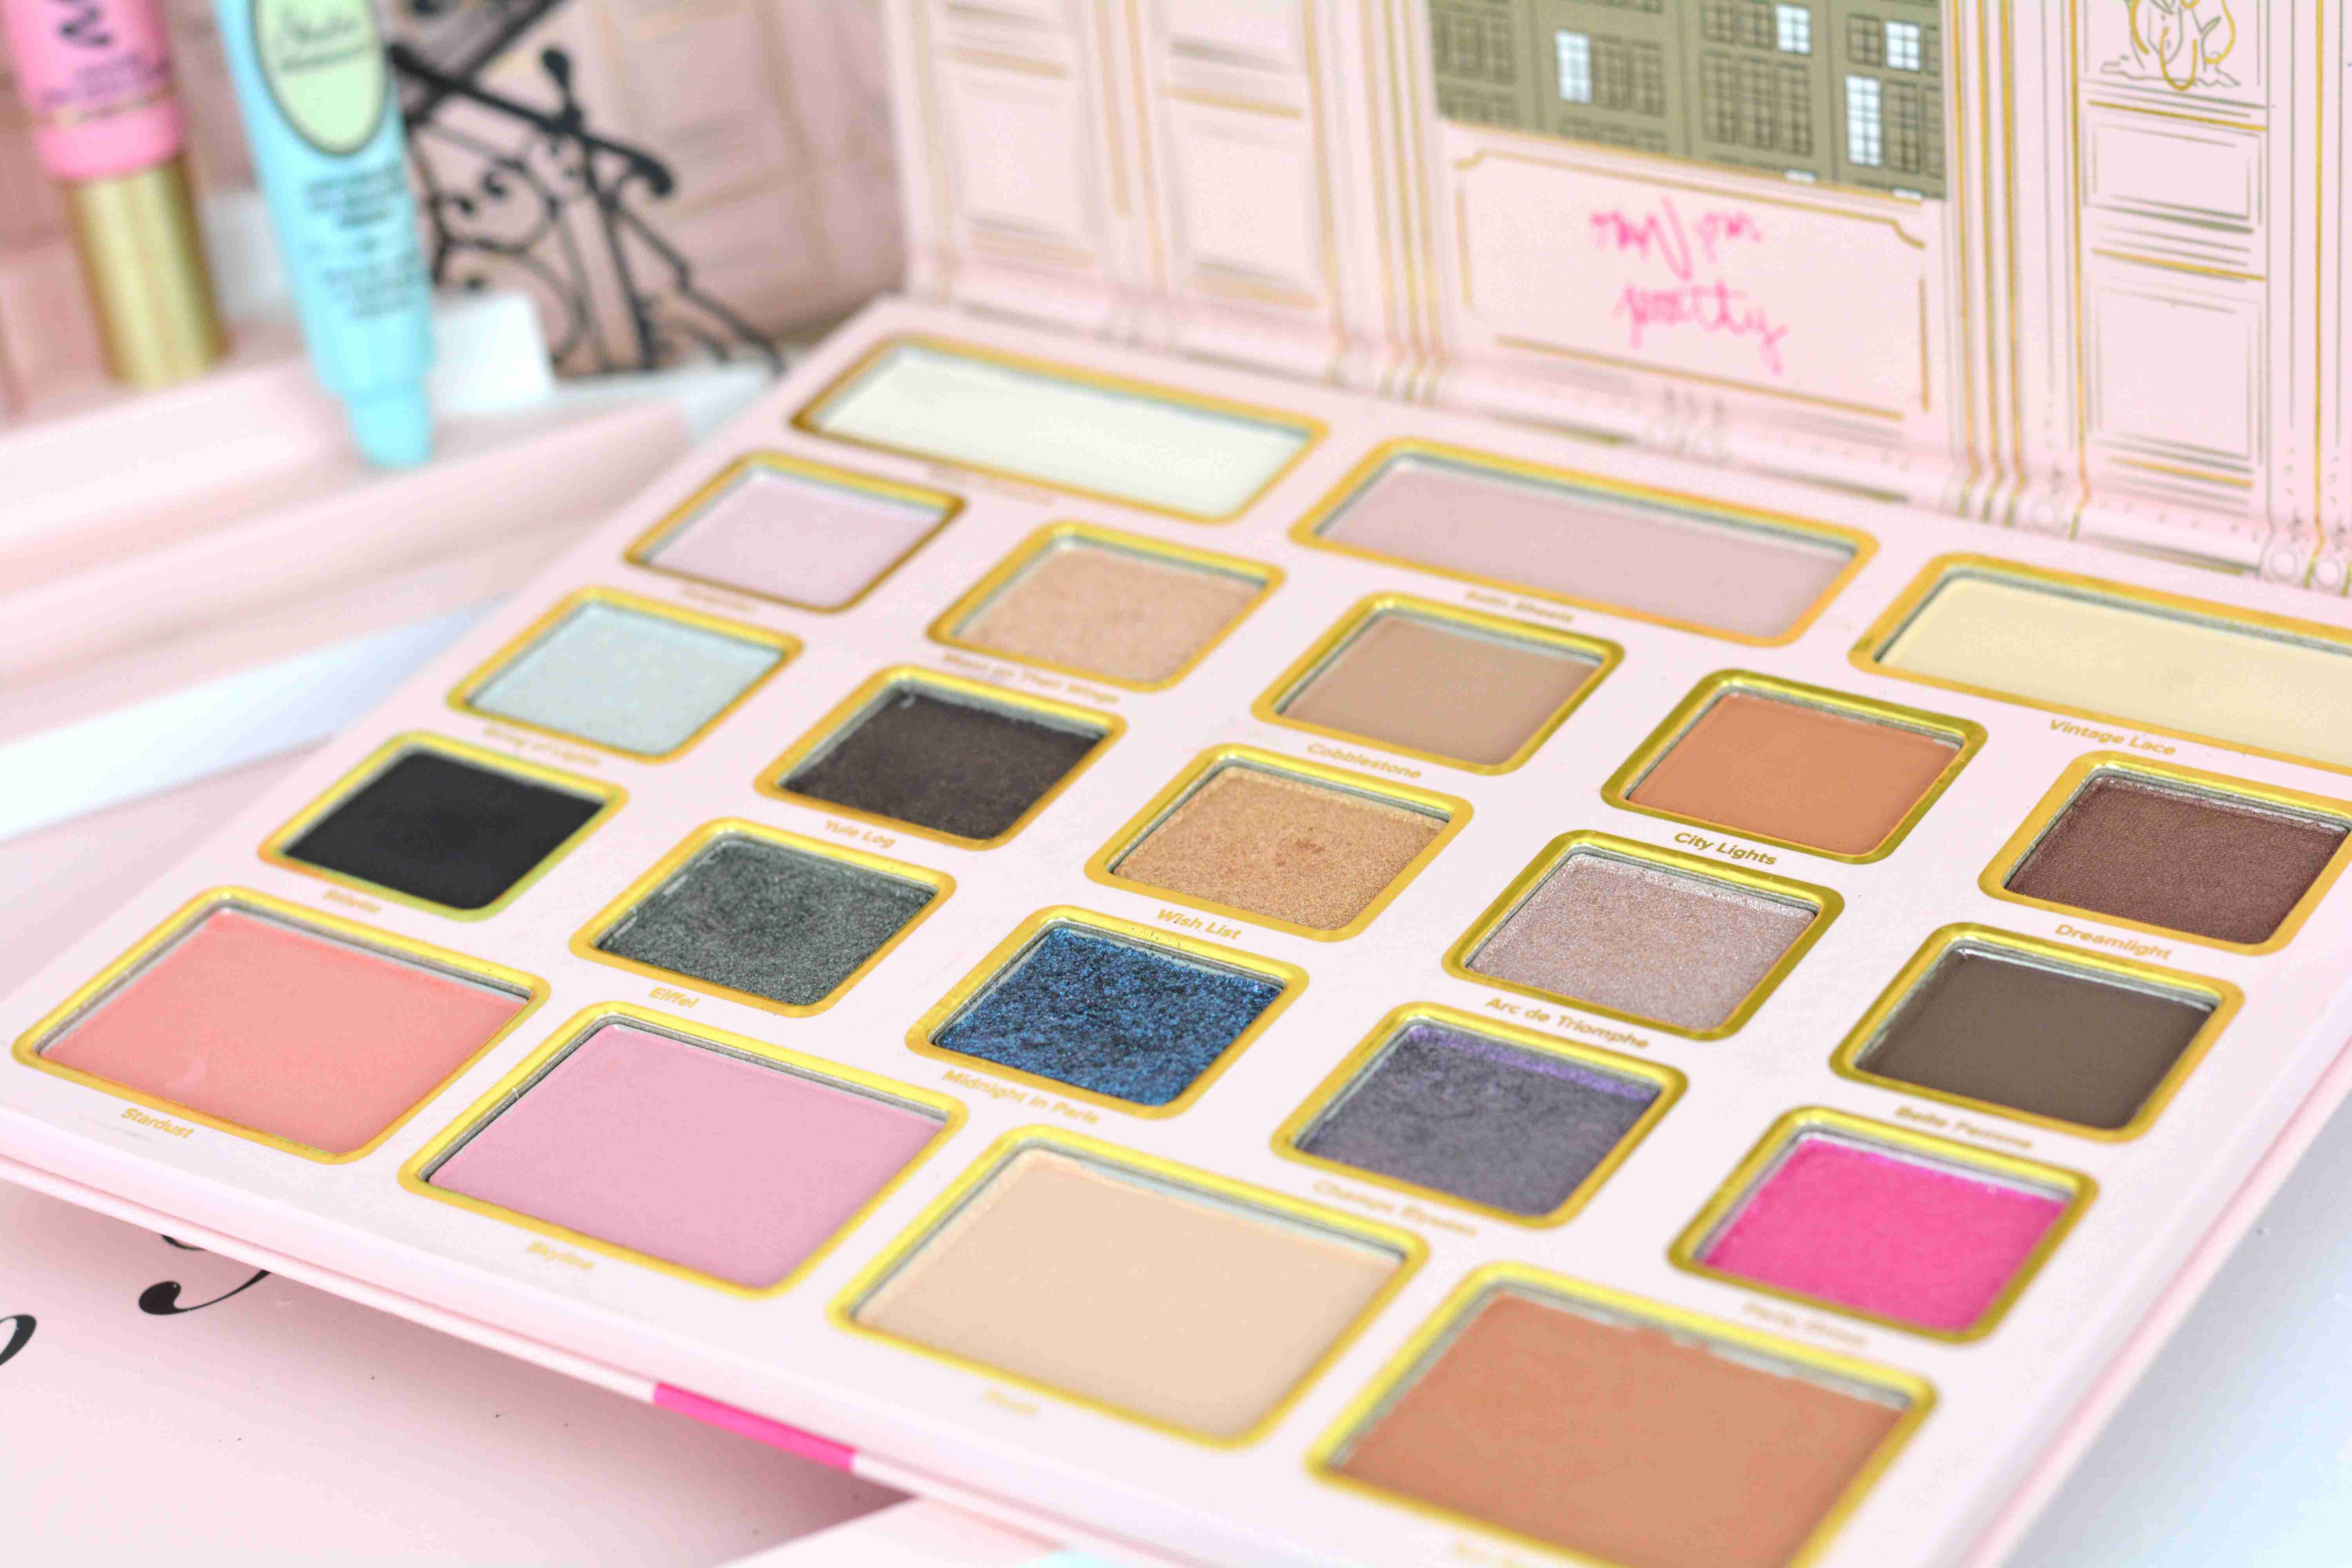 grand-palais-too-faced-palette-fards-paupieres-